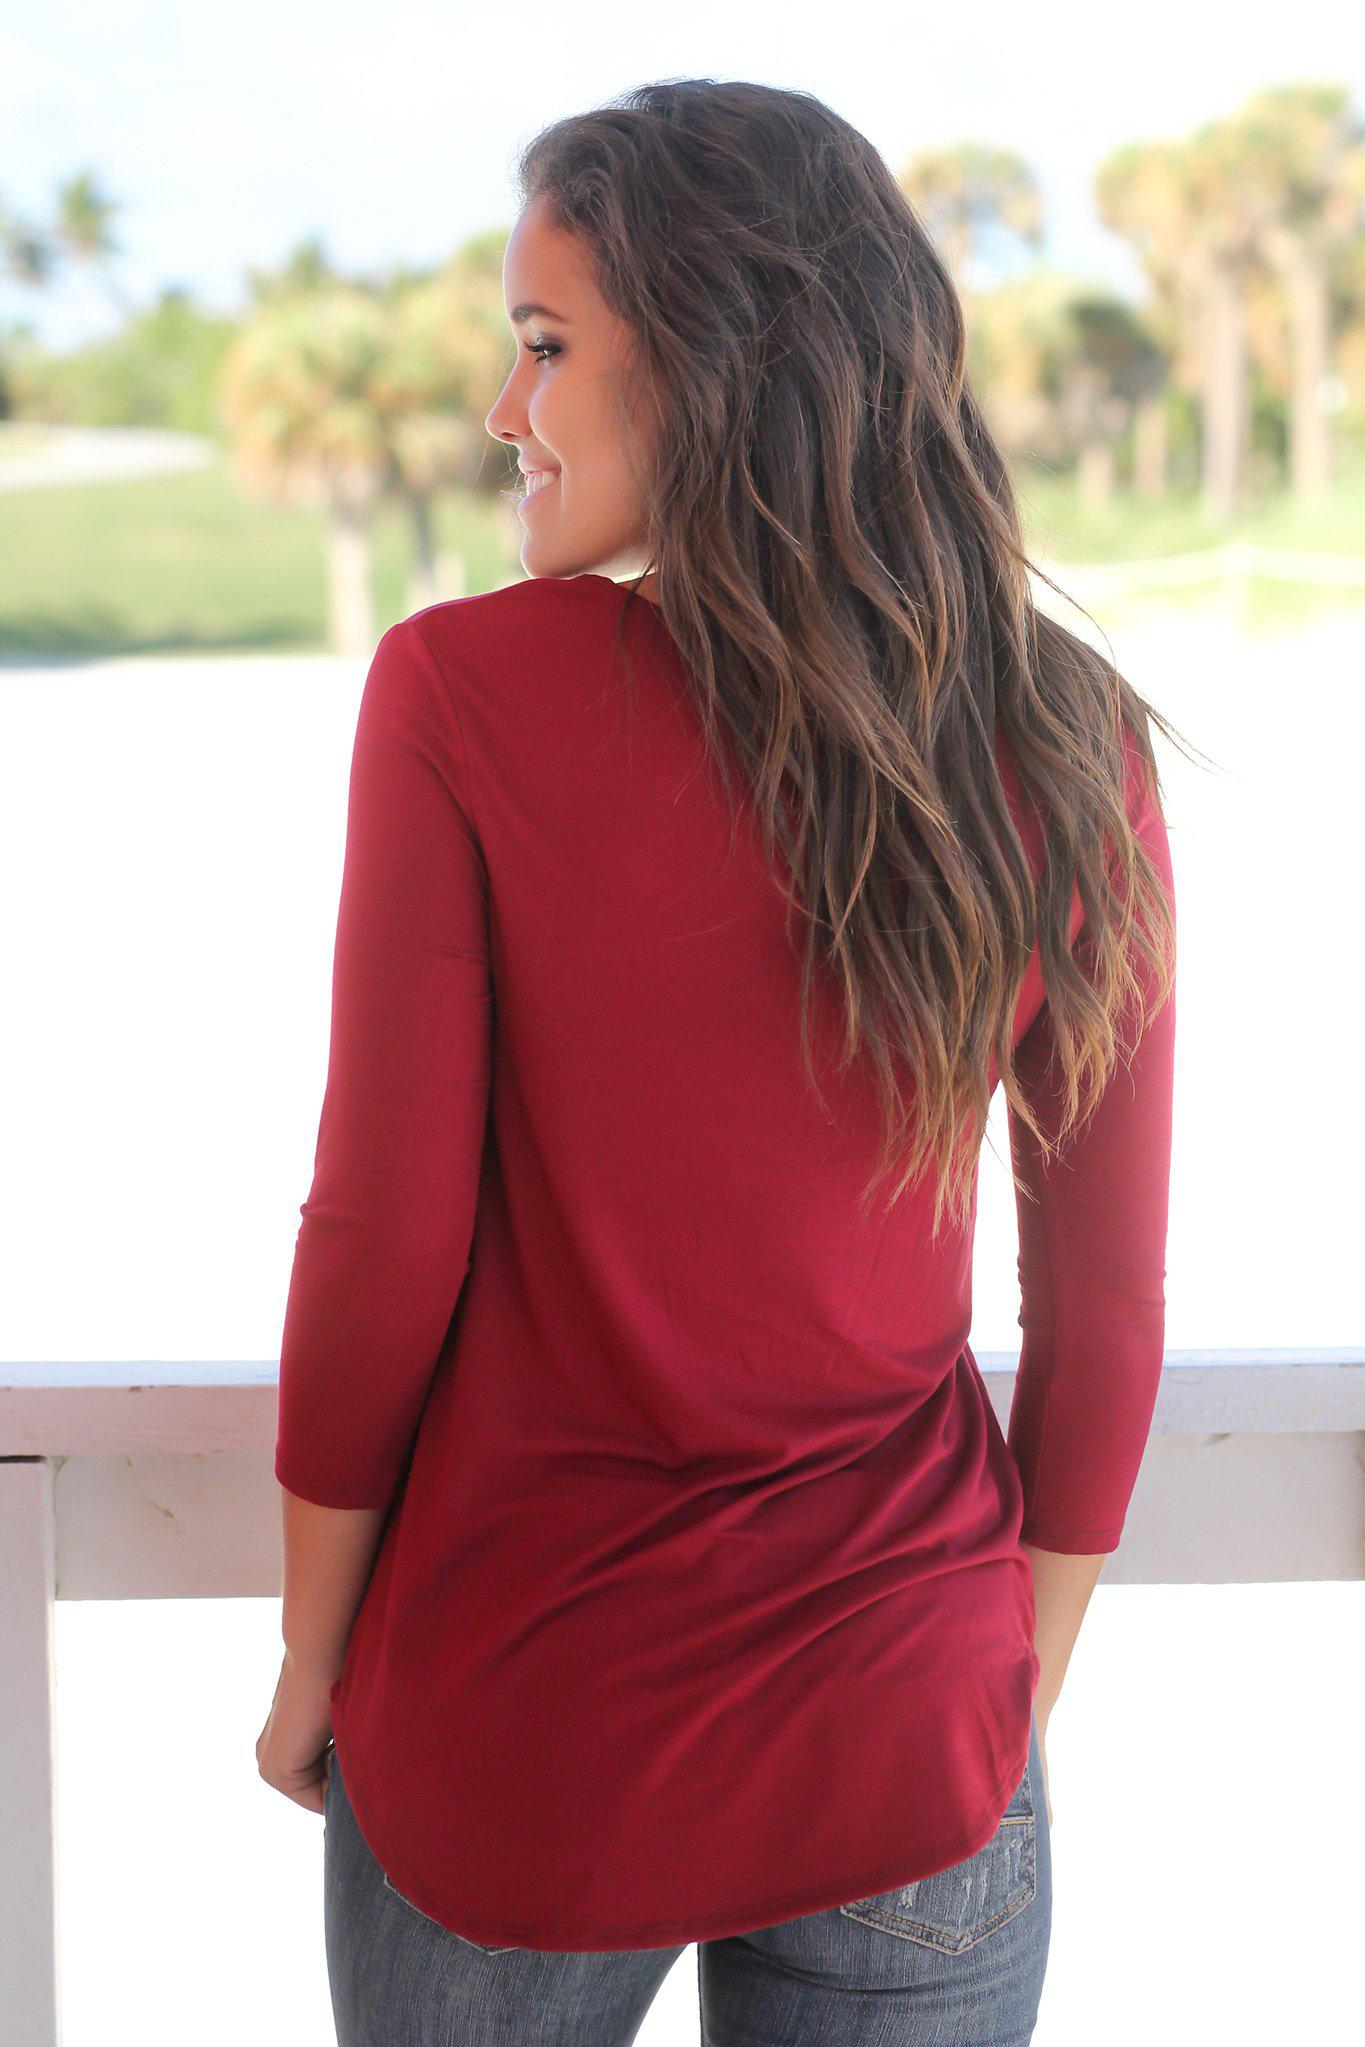 Burgundy Criss Cross Top with 3/4 Sleeves